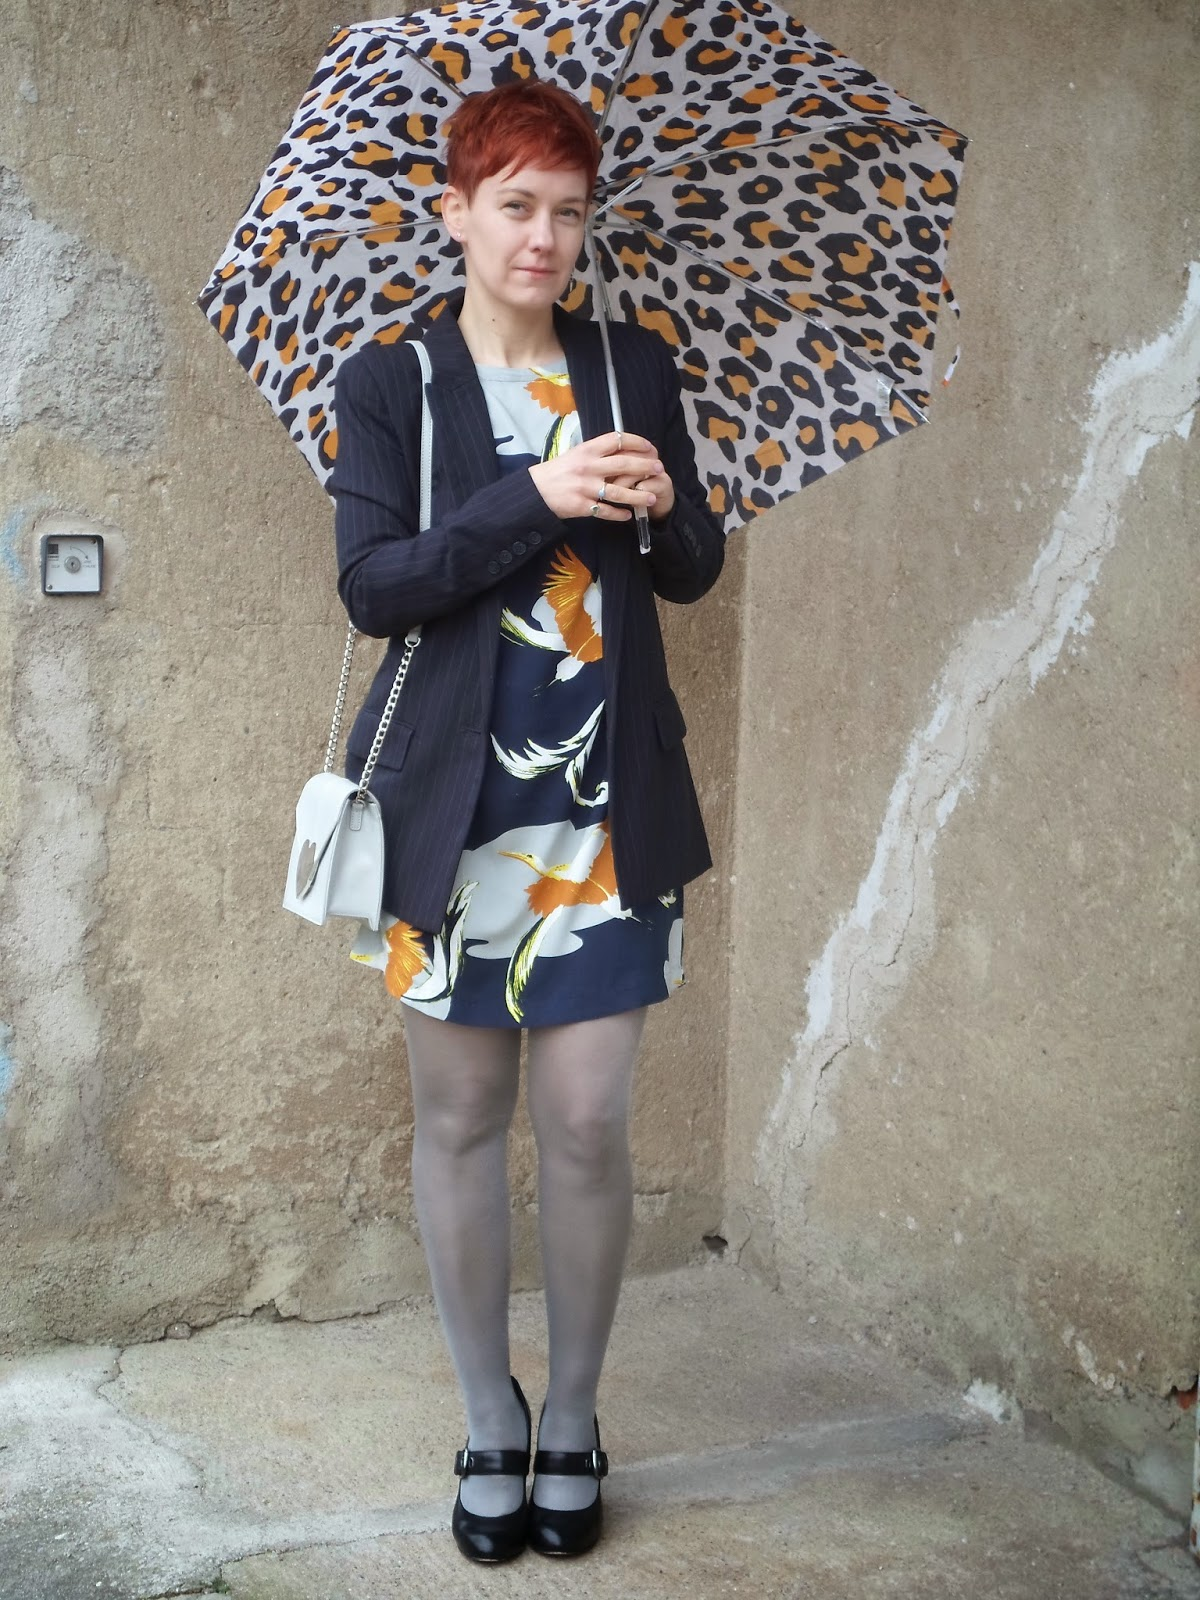 Sunday lunch outfit: Bird print dress, pinstripe blazer, heels, silver tights, hearts bag and a leopard umbrella | Sunday Lunch - Funky Jungle, fashion and personal style blog